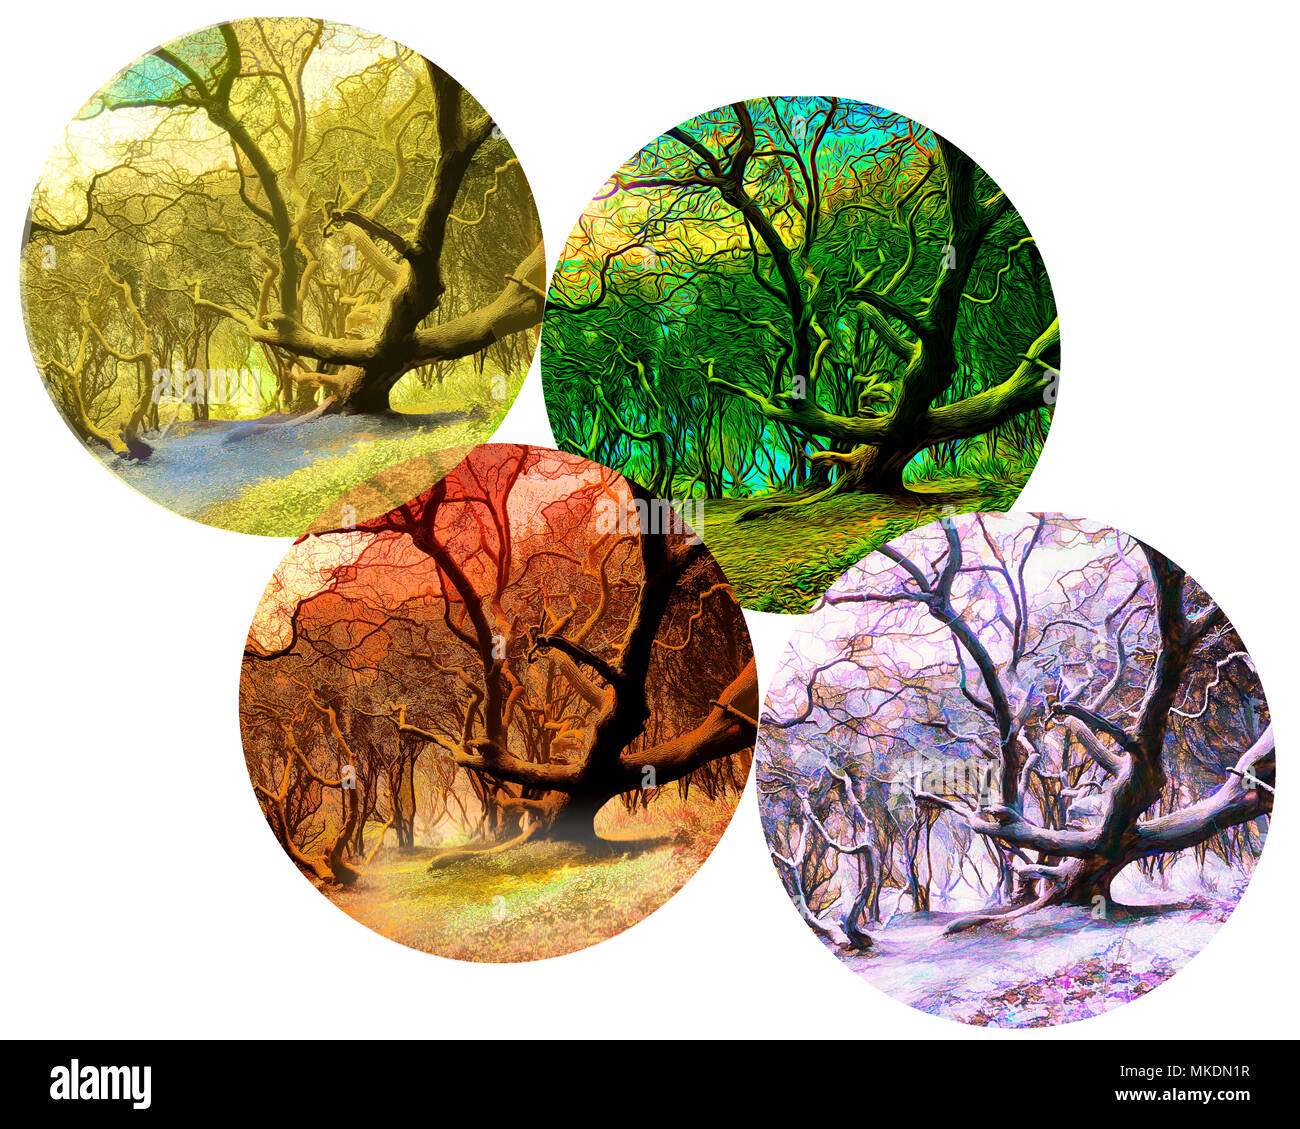 FOUR SEASONS CONCEPT: Magic of the Forest - Stock Image